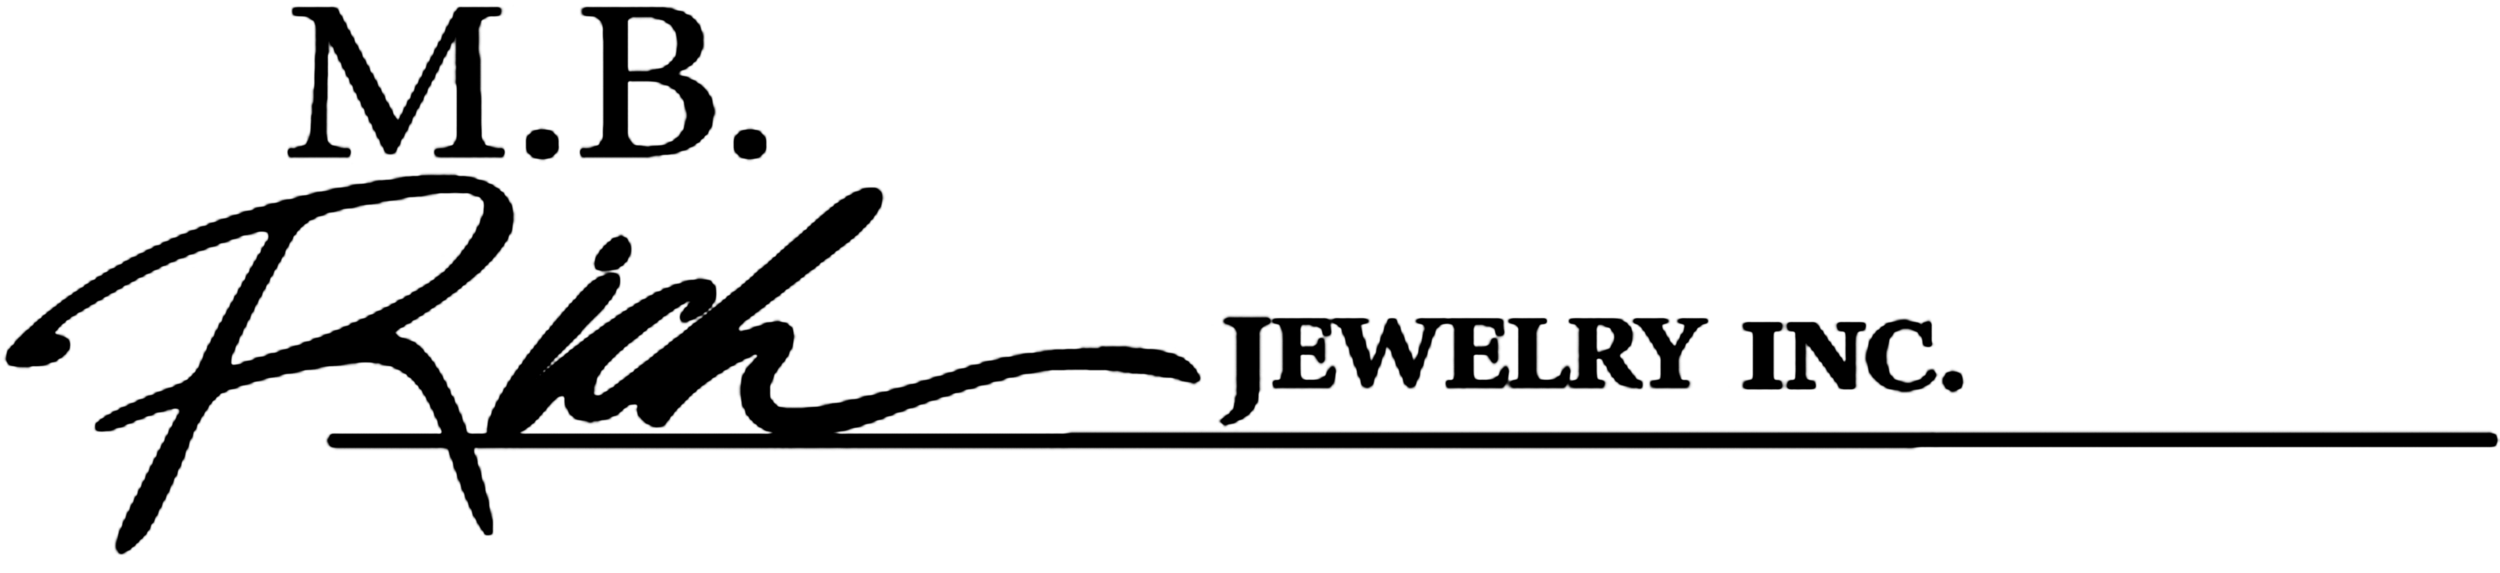 MBR LOGO PNG (3) (1).png